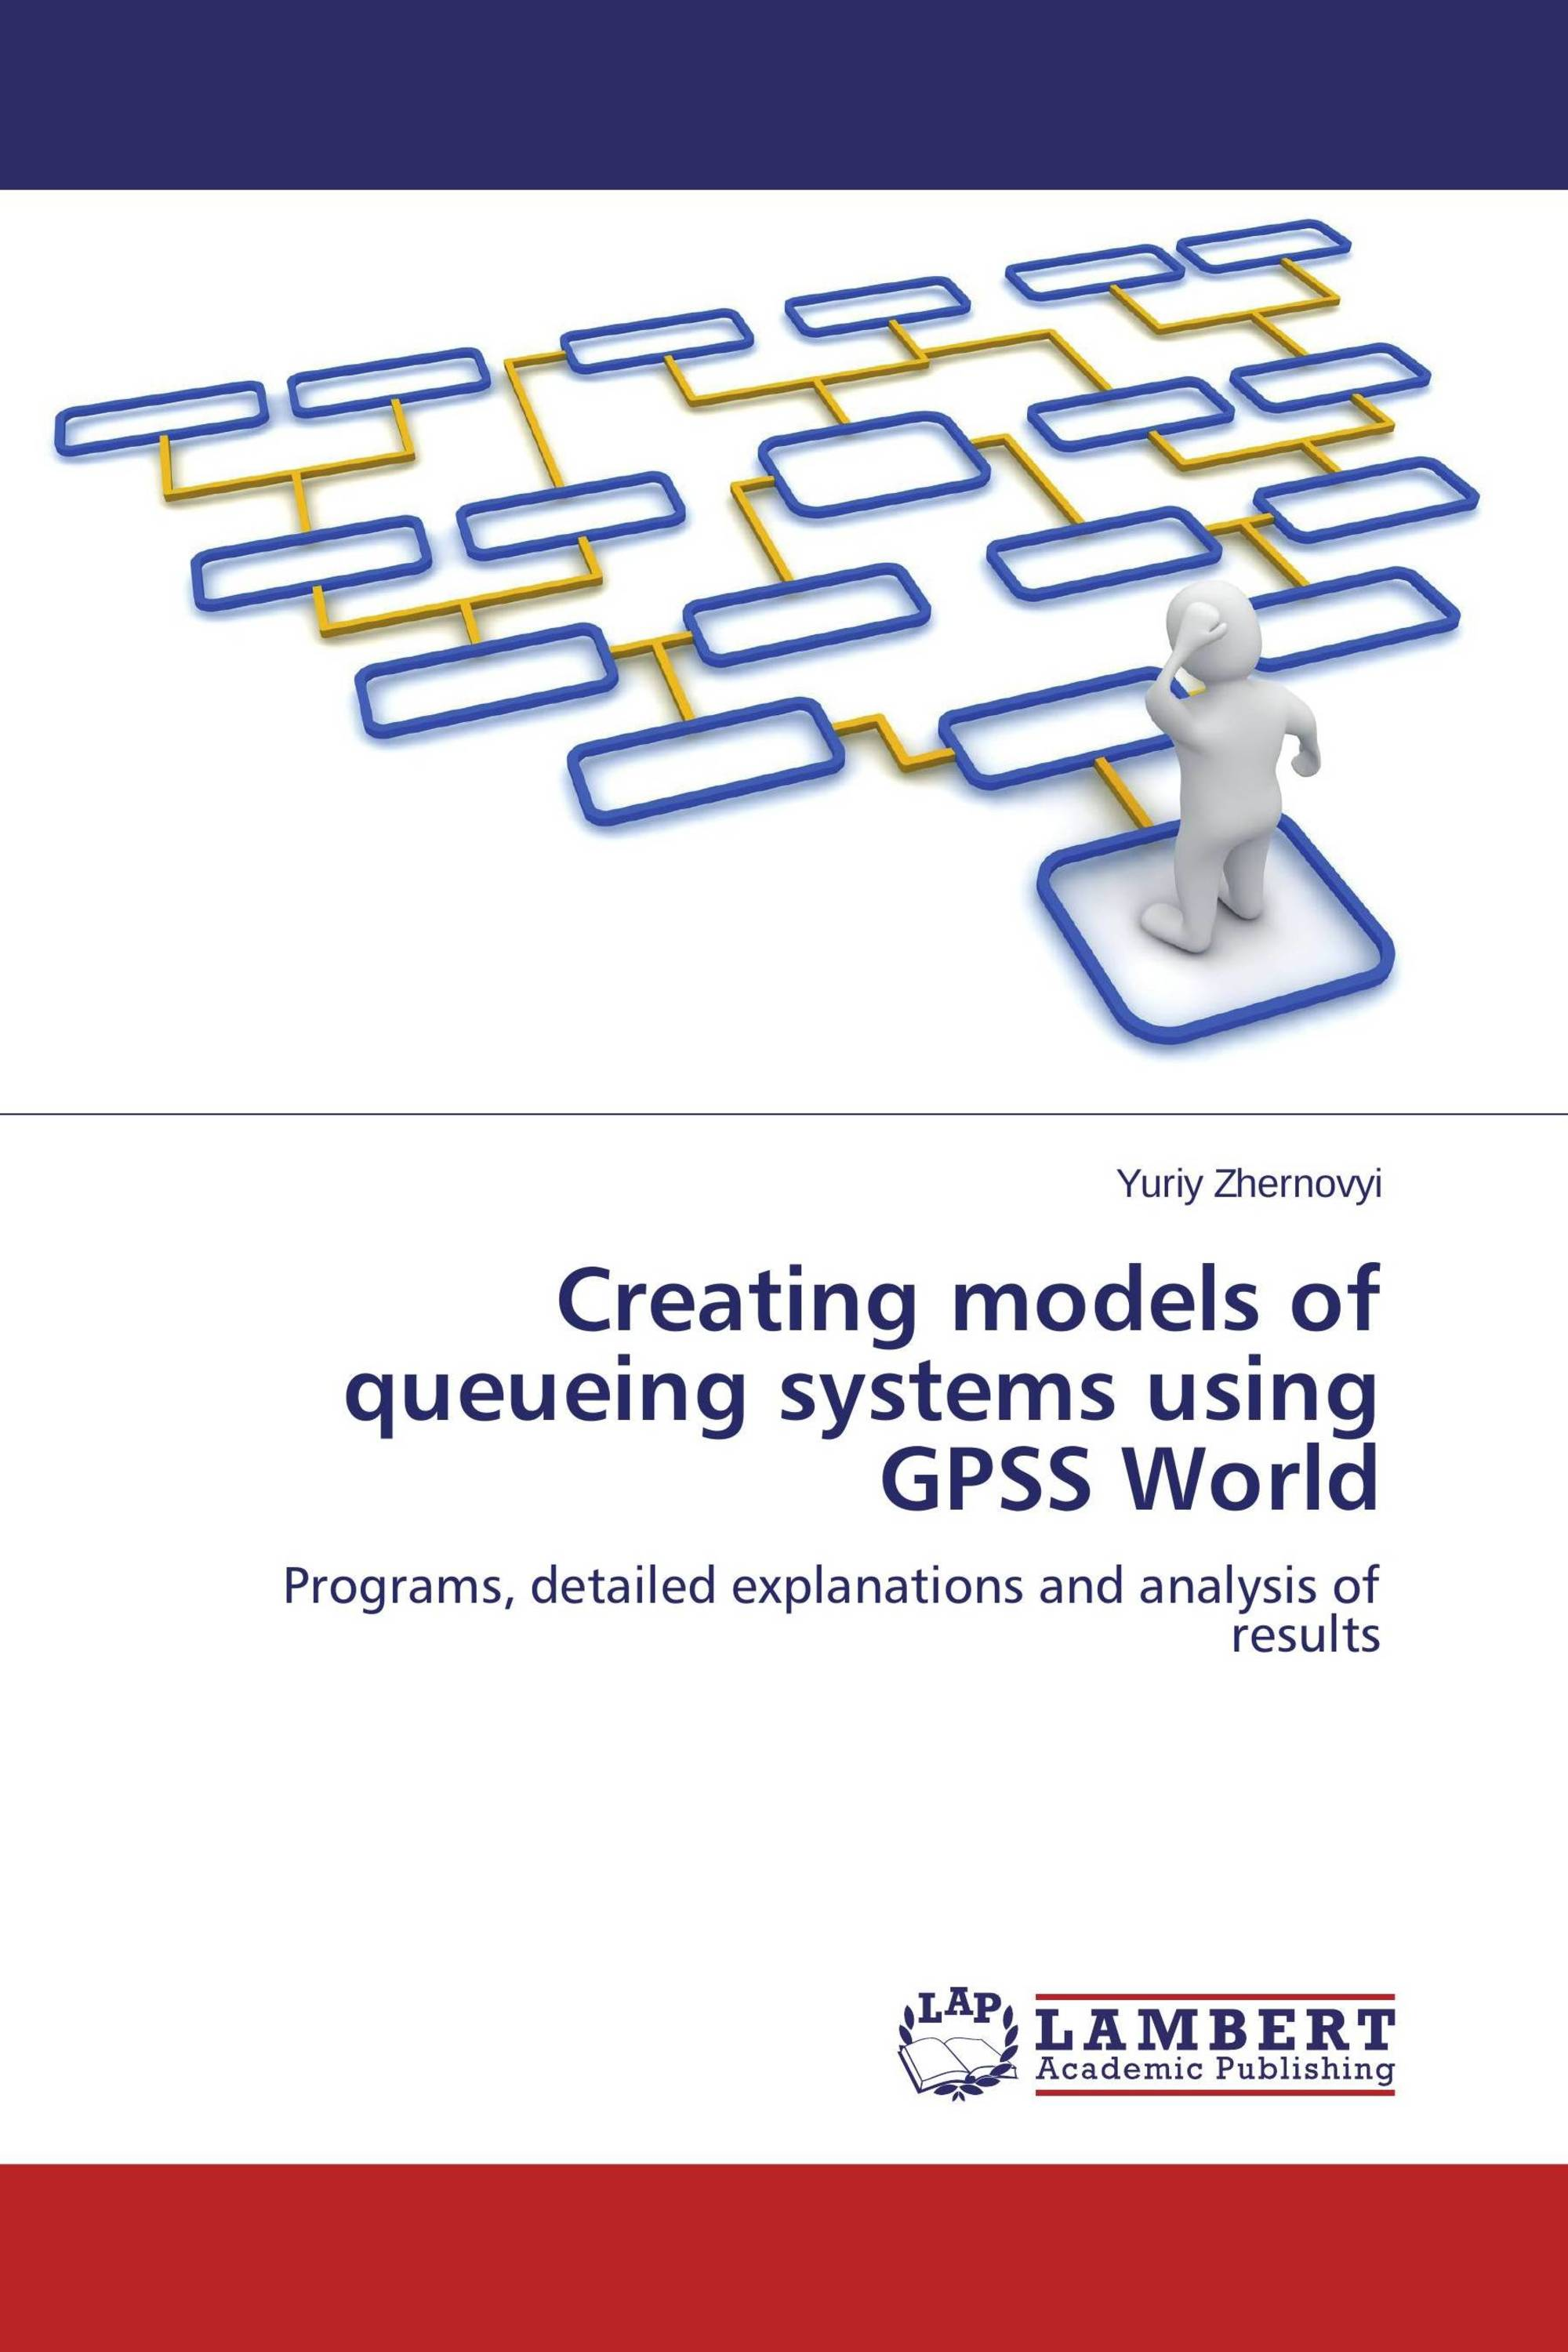 Creating models of queueing systems using GPSS World